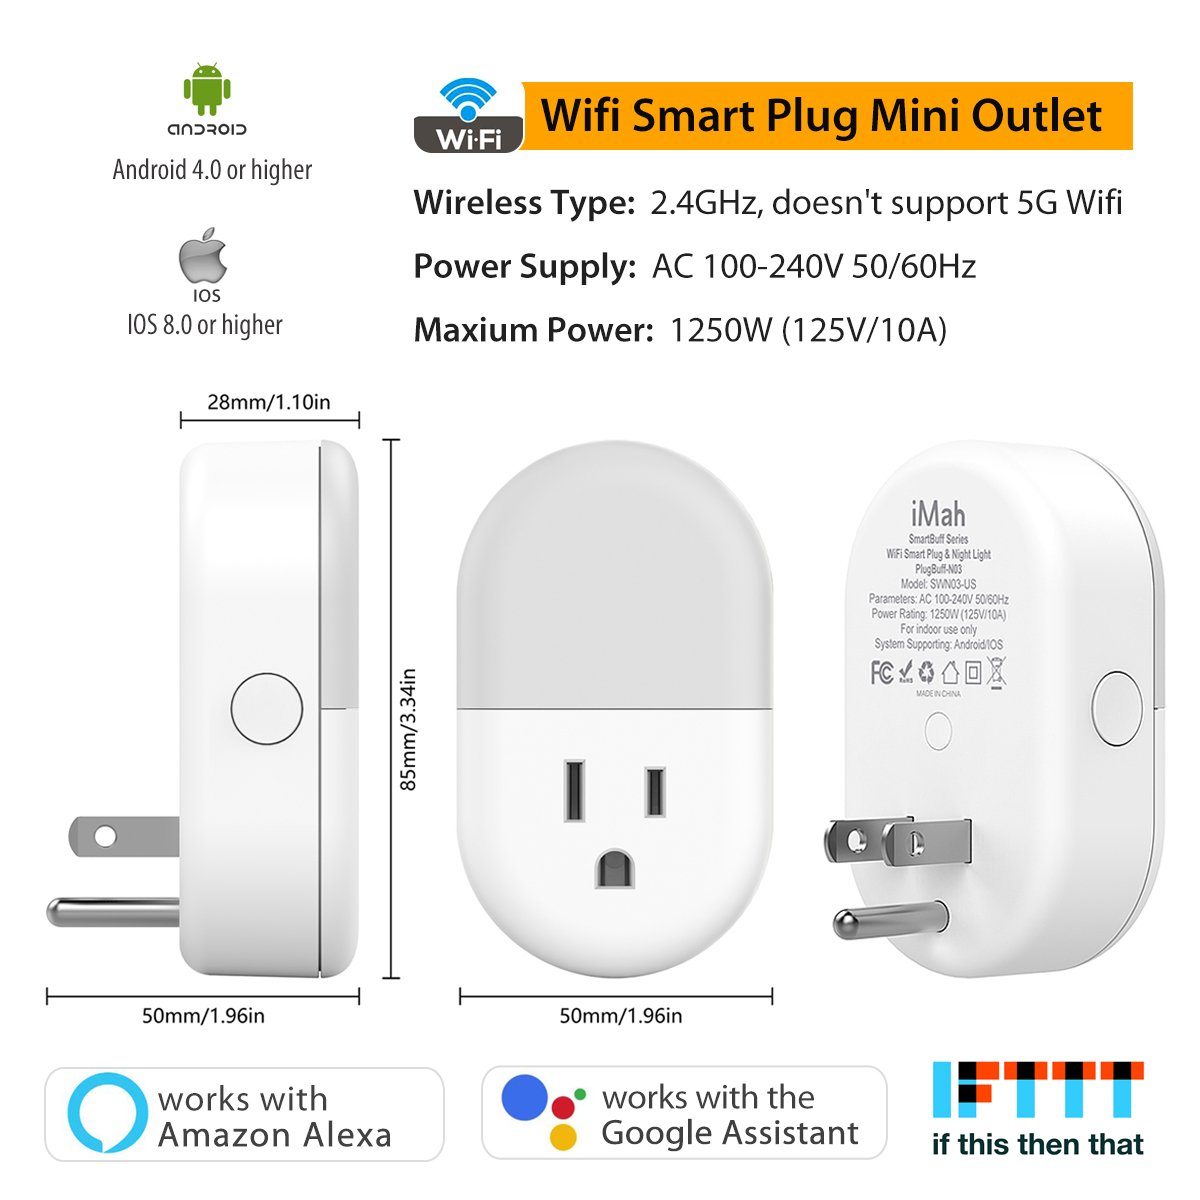 iMah Night Light Plug-in, Smart Plug works with Alexa Google Assistant IFTTT, WiFi Smart Plug Mini Outlet Socket control your Devices from Anywhere (4-Pack) by iMah (Image #3)